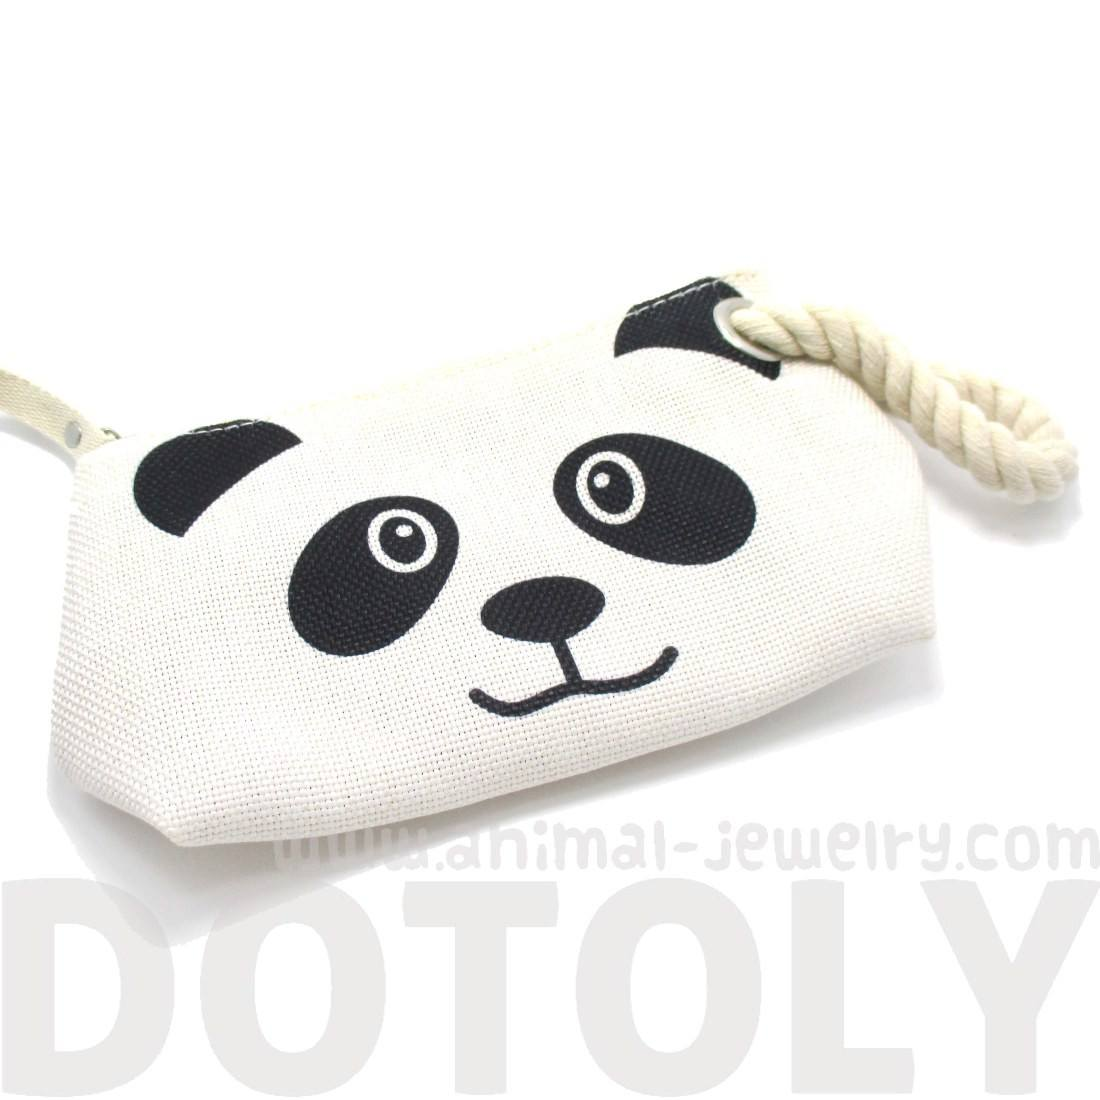 Panda Bear Shaped Clutch Make Up Bag with Wrist Strap